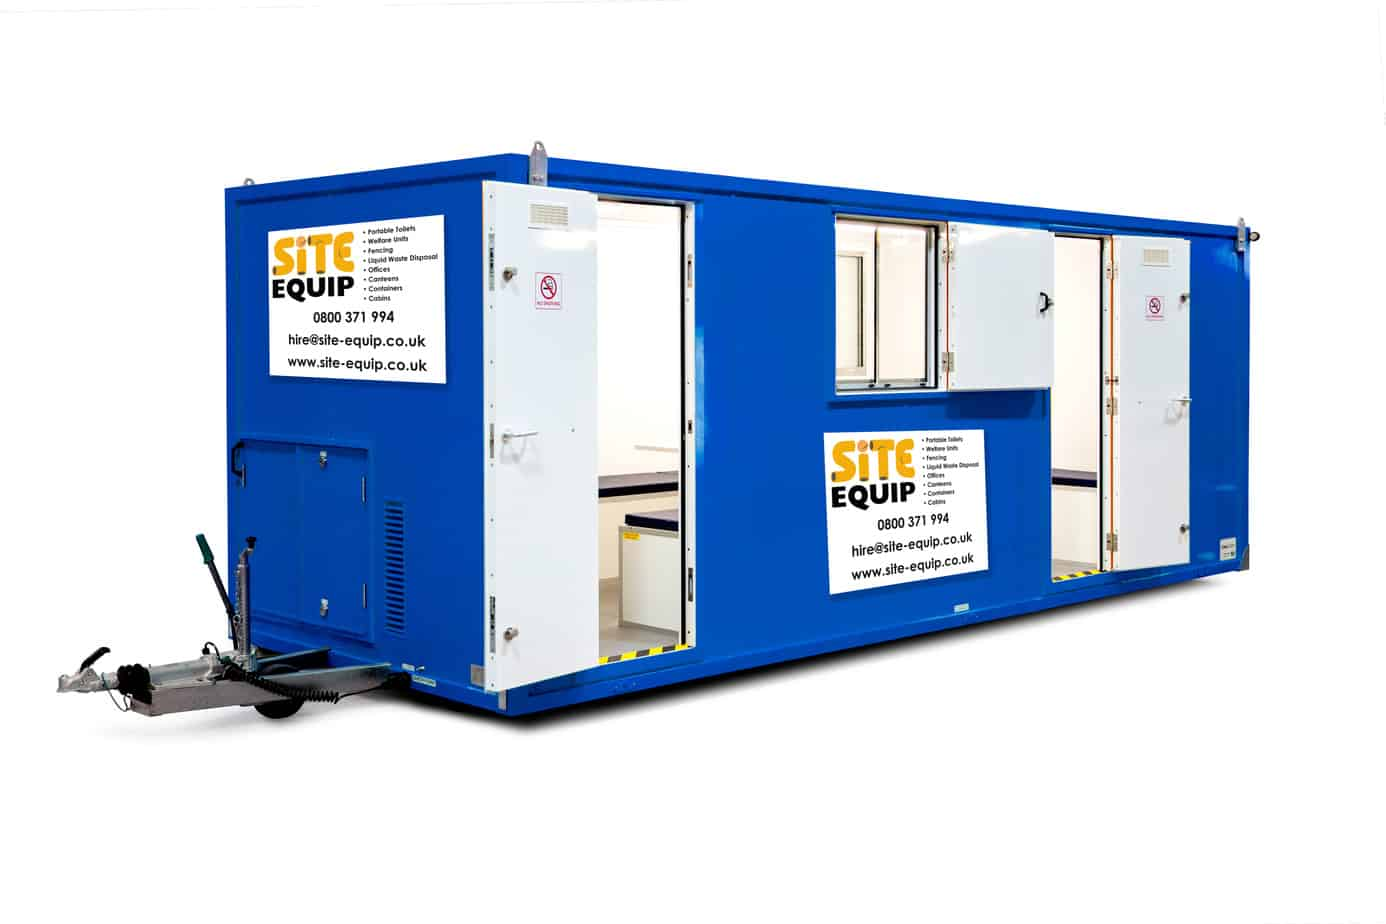 20 foot welfare unit hire